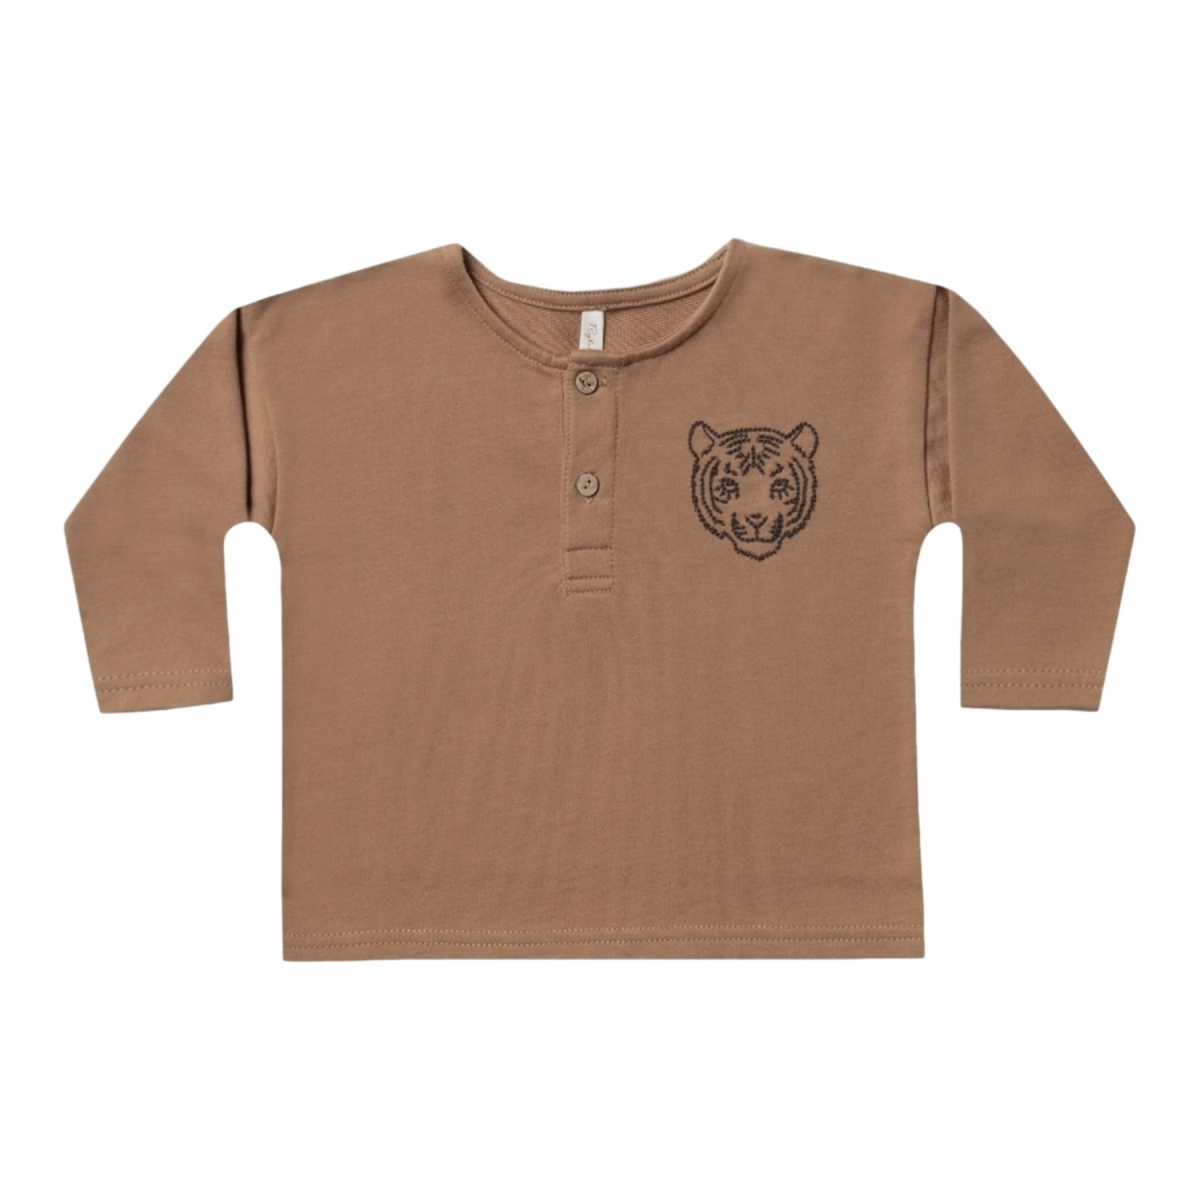 Rylee and Cru - Tiger Henley Sweatshirt Brown - 1